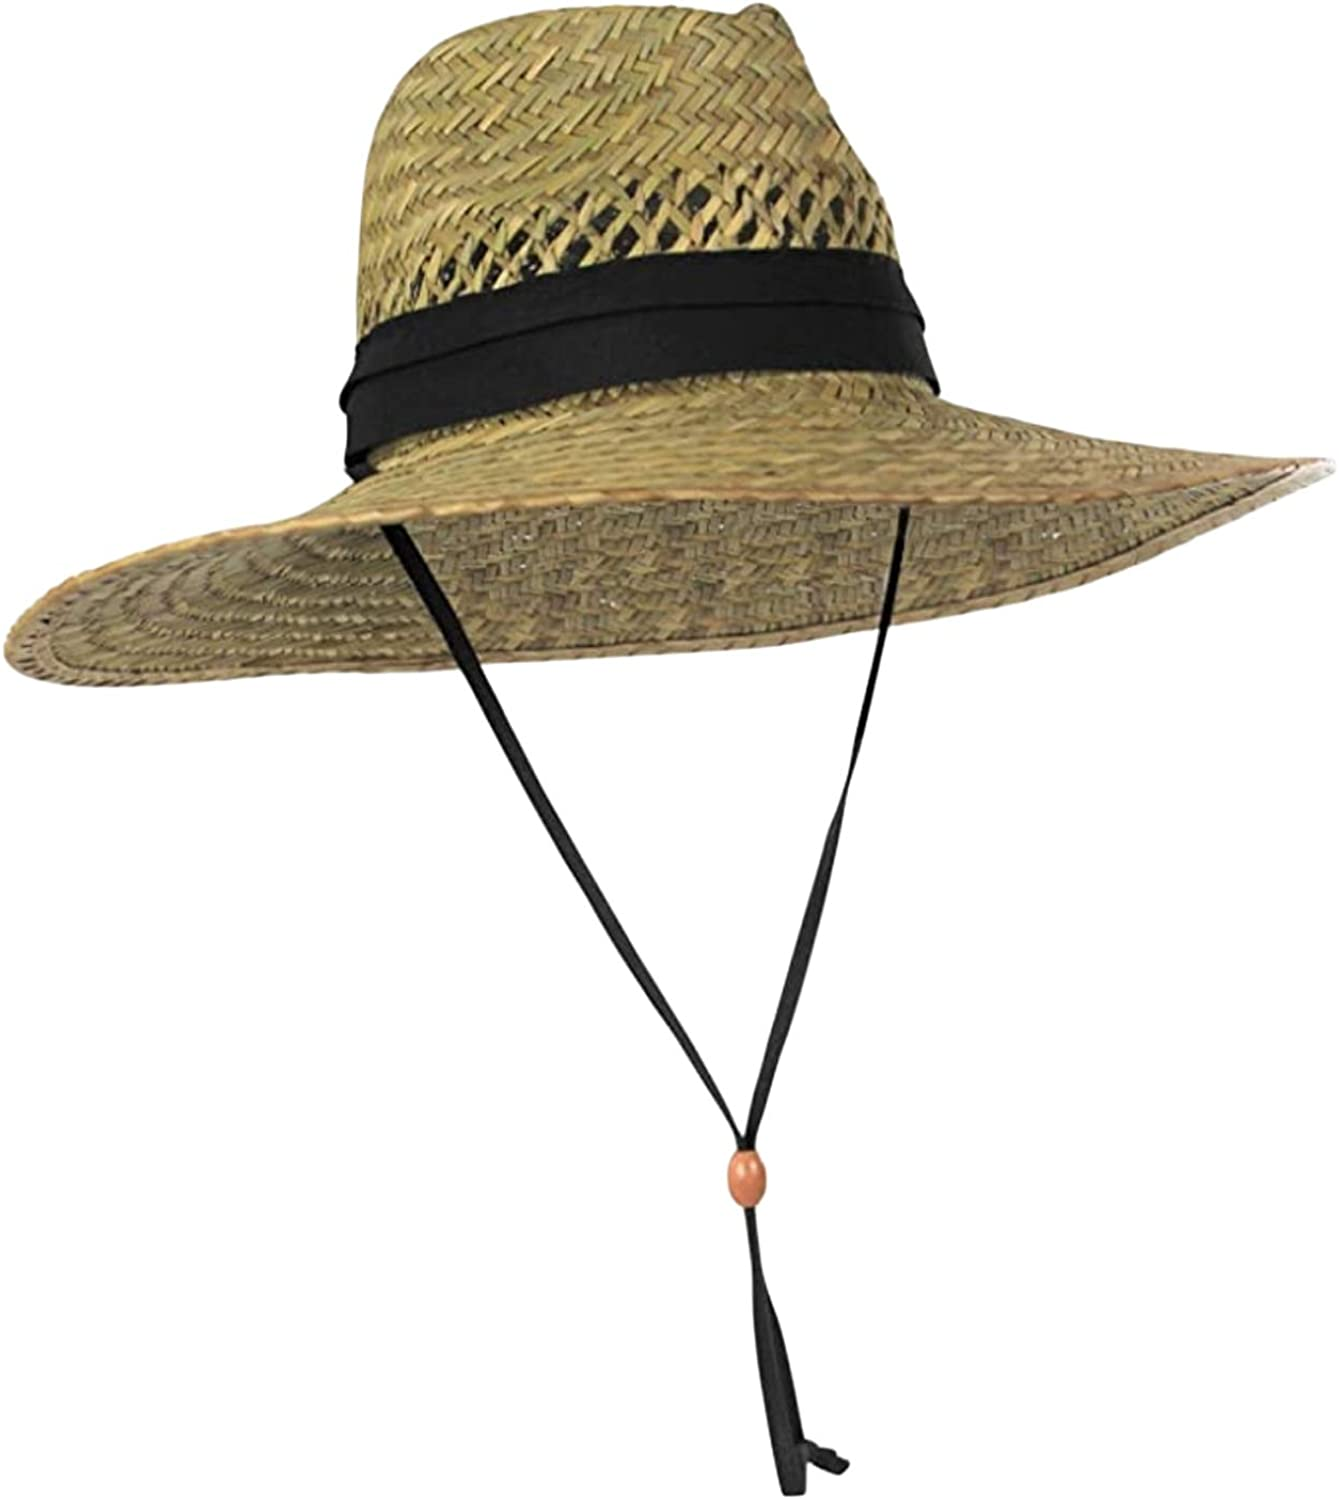 Men's Straw Outback Lifeguard Sun Brim Wide Long-awaited with Selling and selling Tan Hat